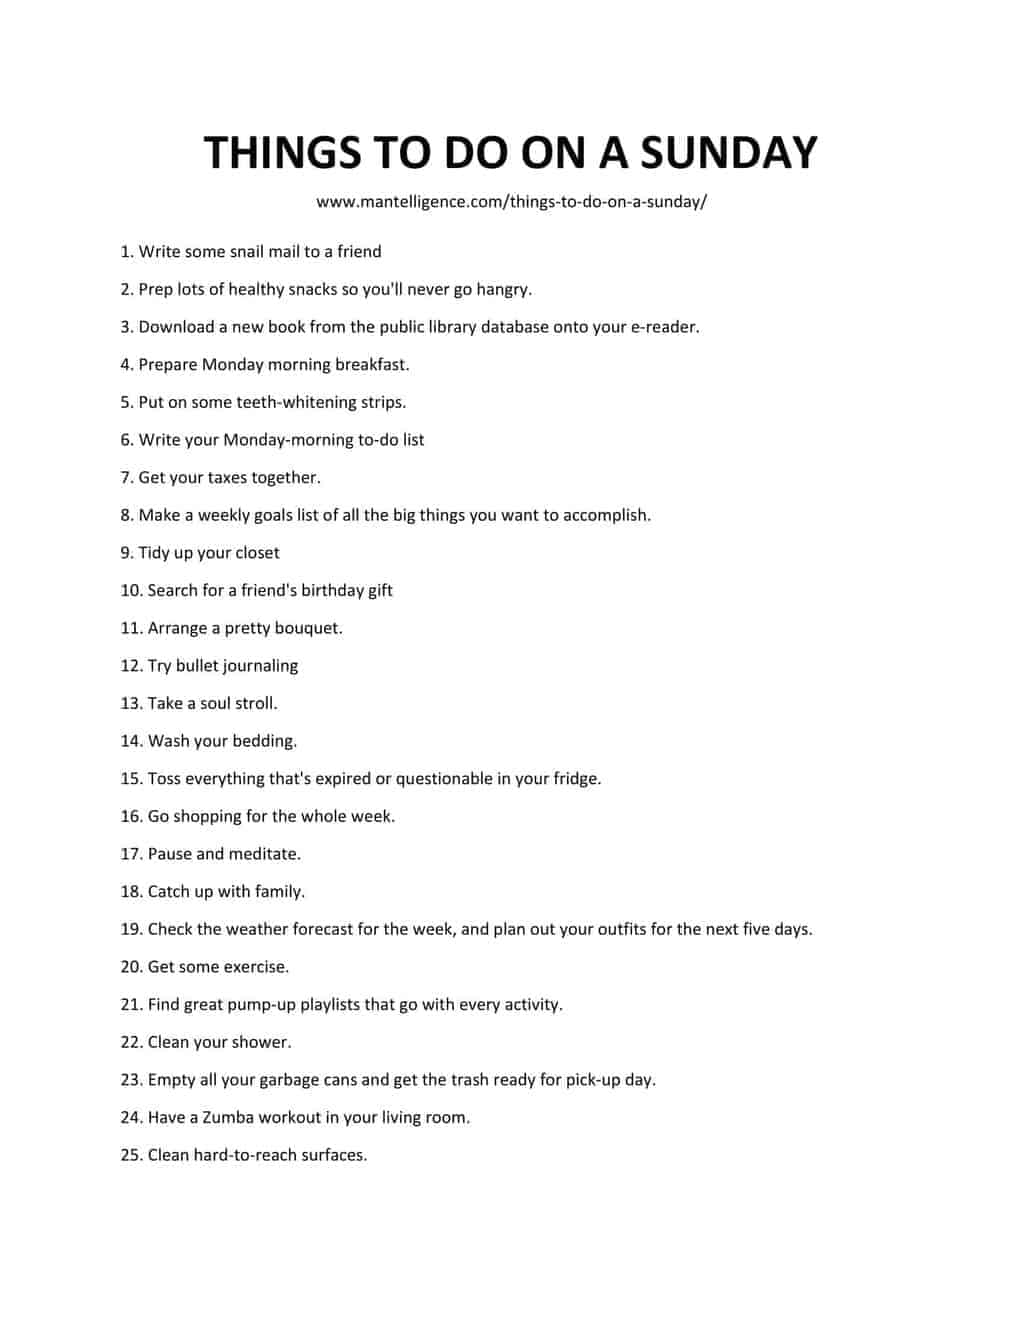 list of THINGS TO DO ON A SUNDAY1